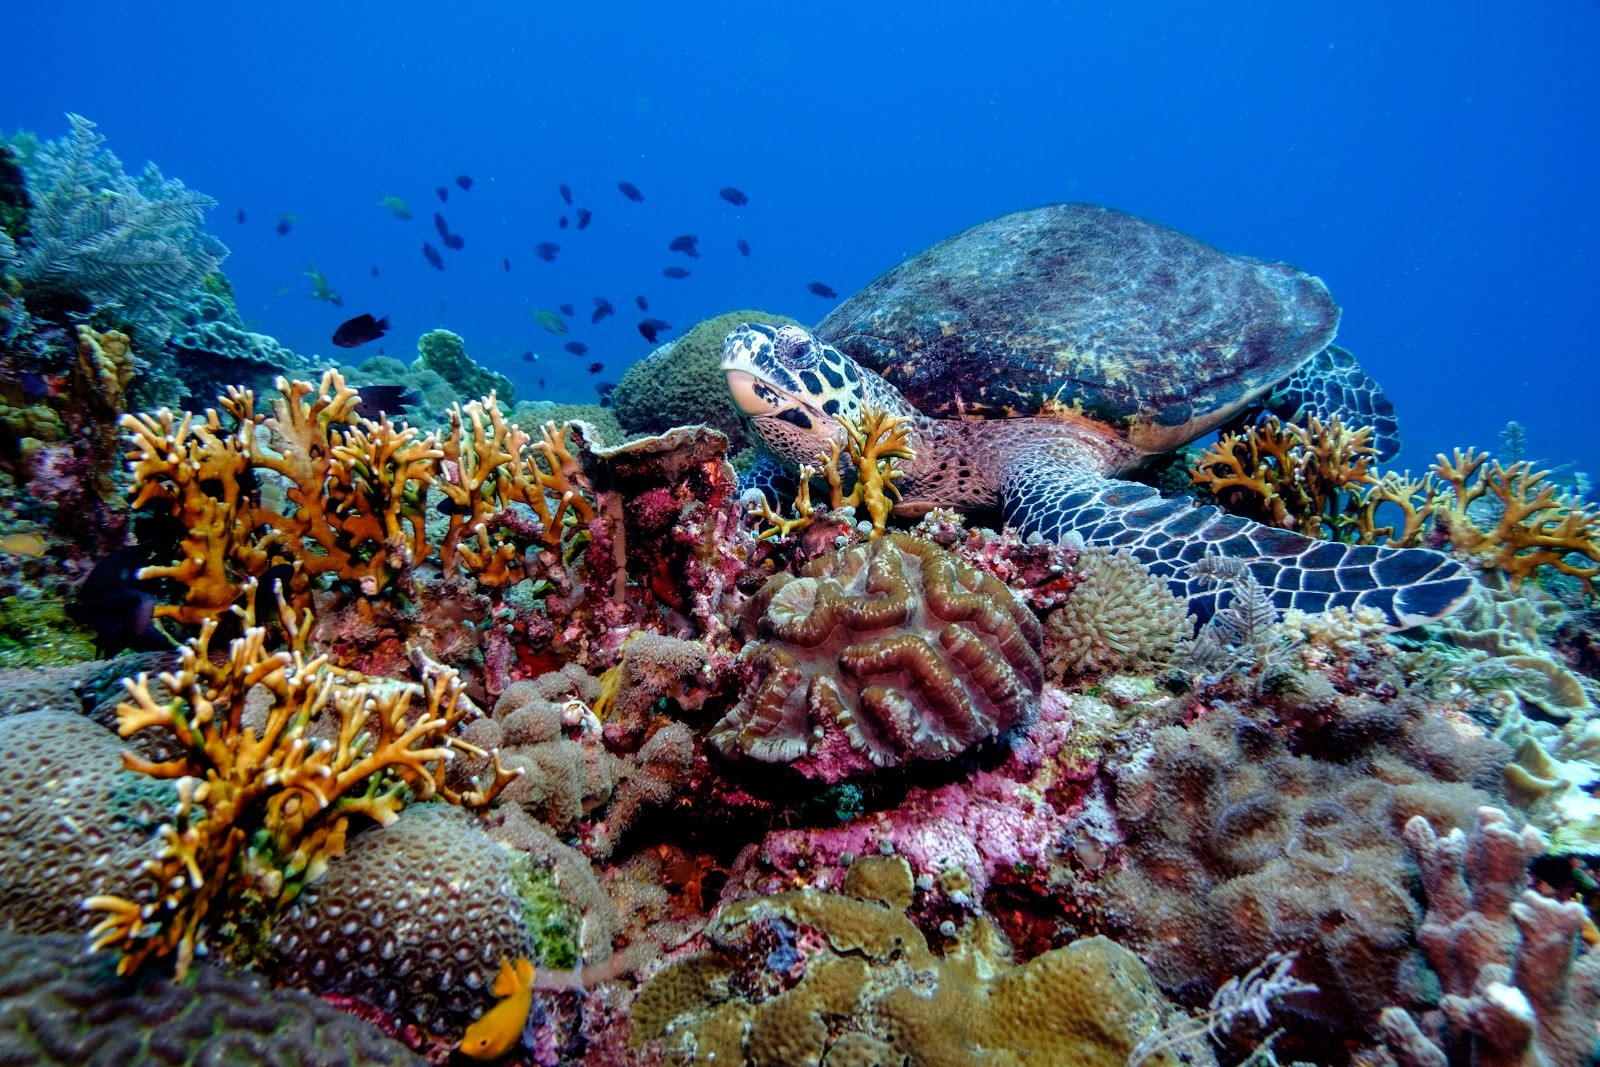 A hawksbill turtle resting on the reef